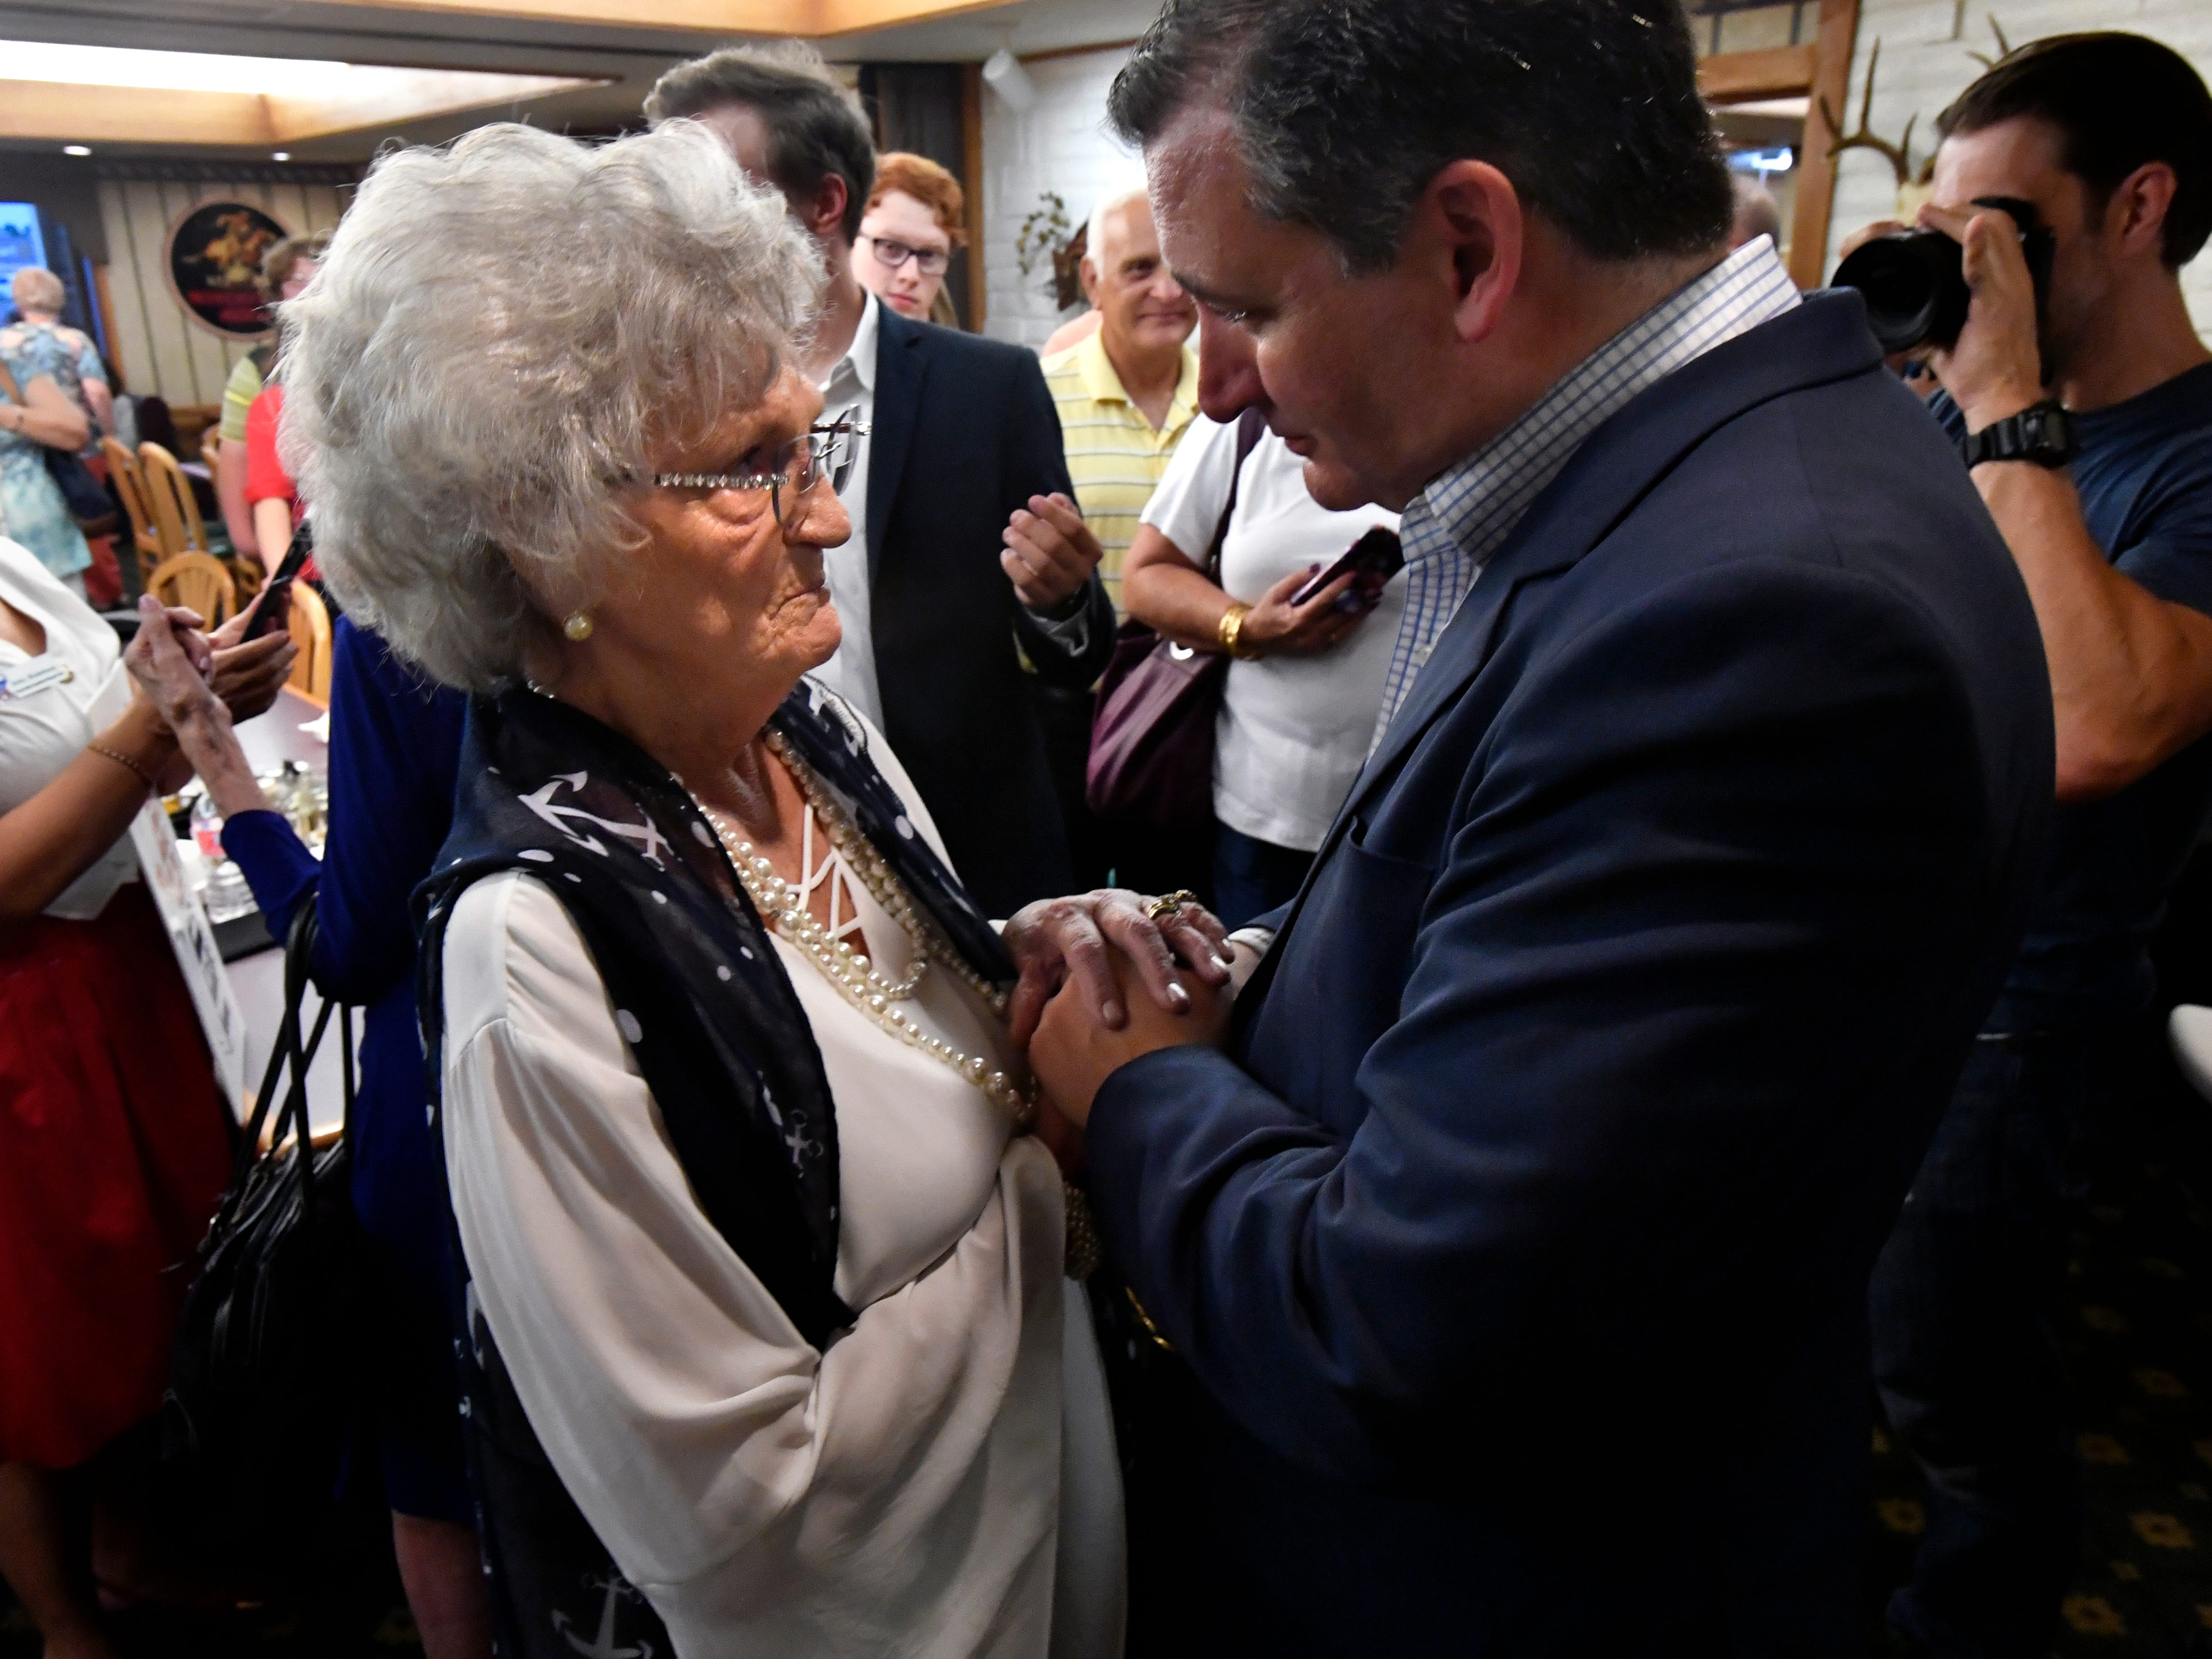 Iva Harris is greeted by Senator Ted Cruz at the conclusion of his town hall meeting in Brownwood Thursday August 9, 2018. Cruz spoke to and greeted supporters for over 90 minutes at Underwood's Cafeteria.